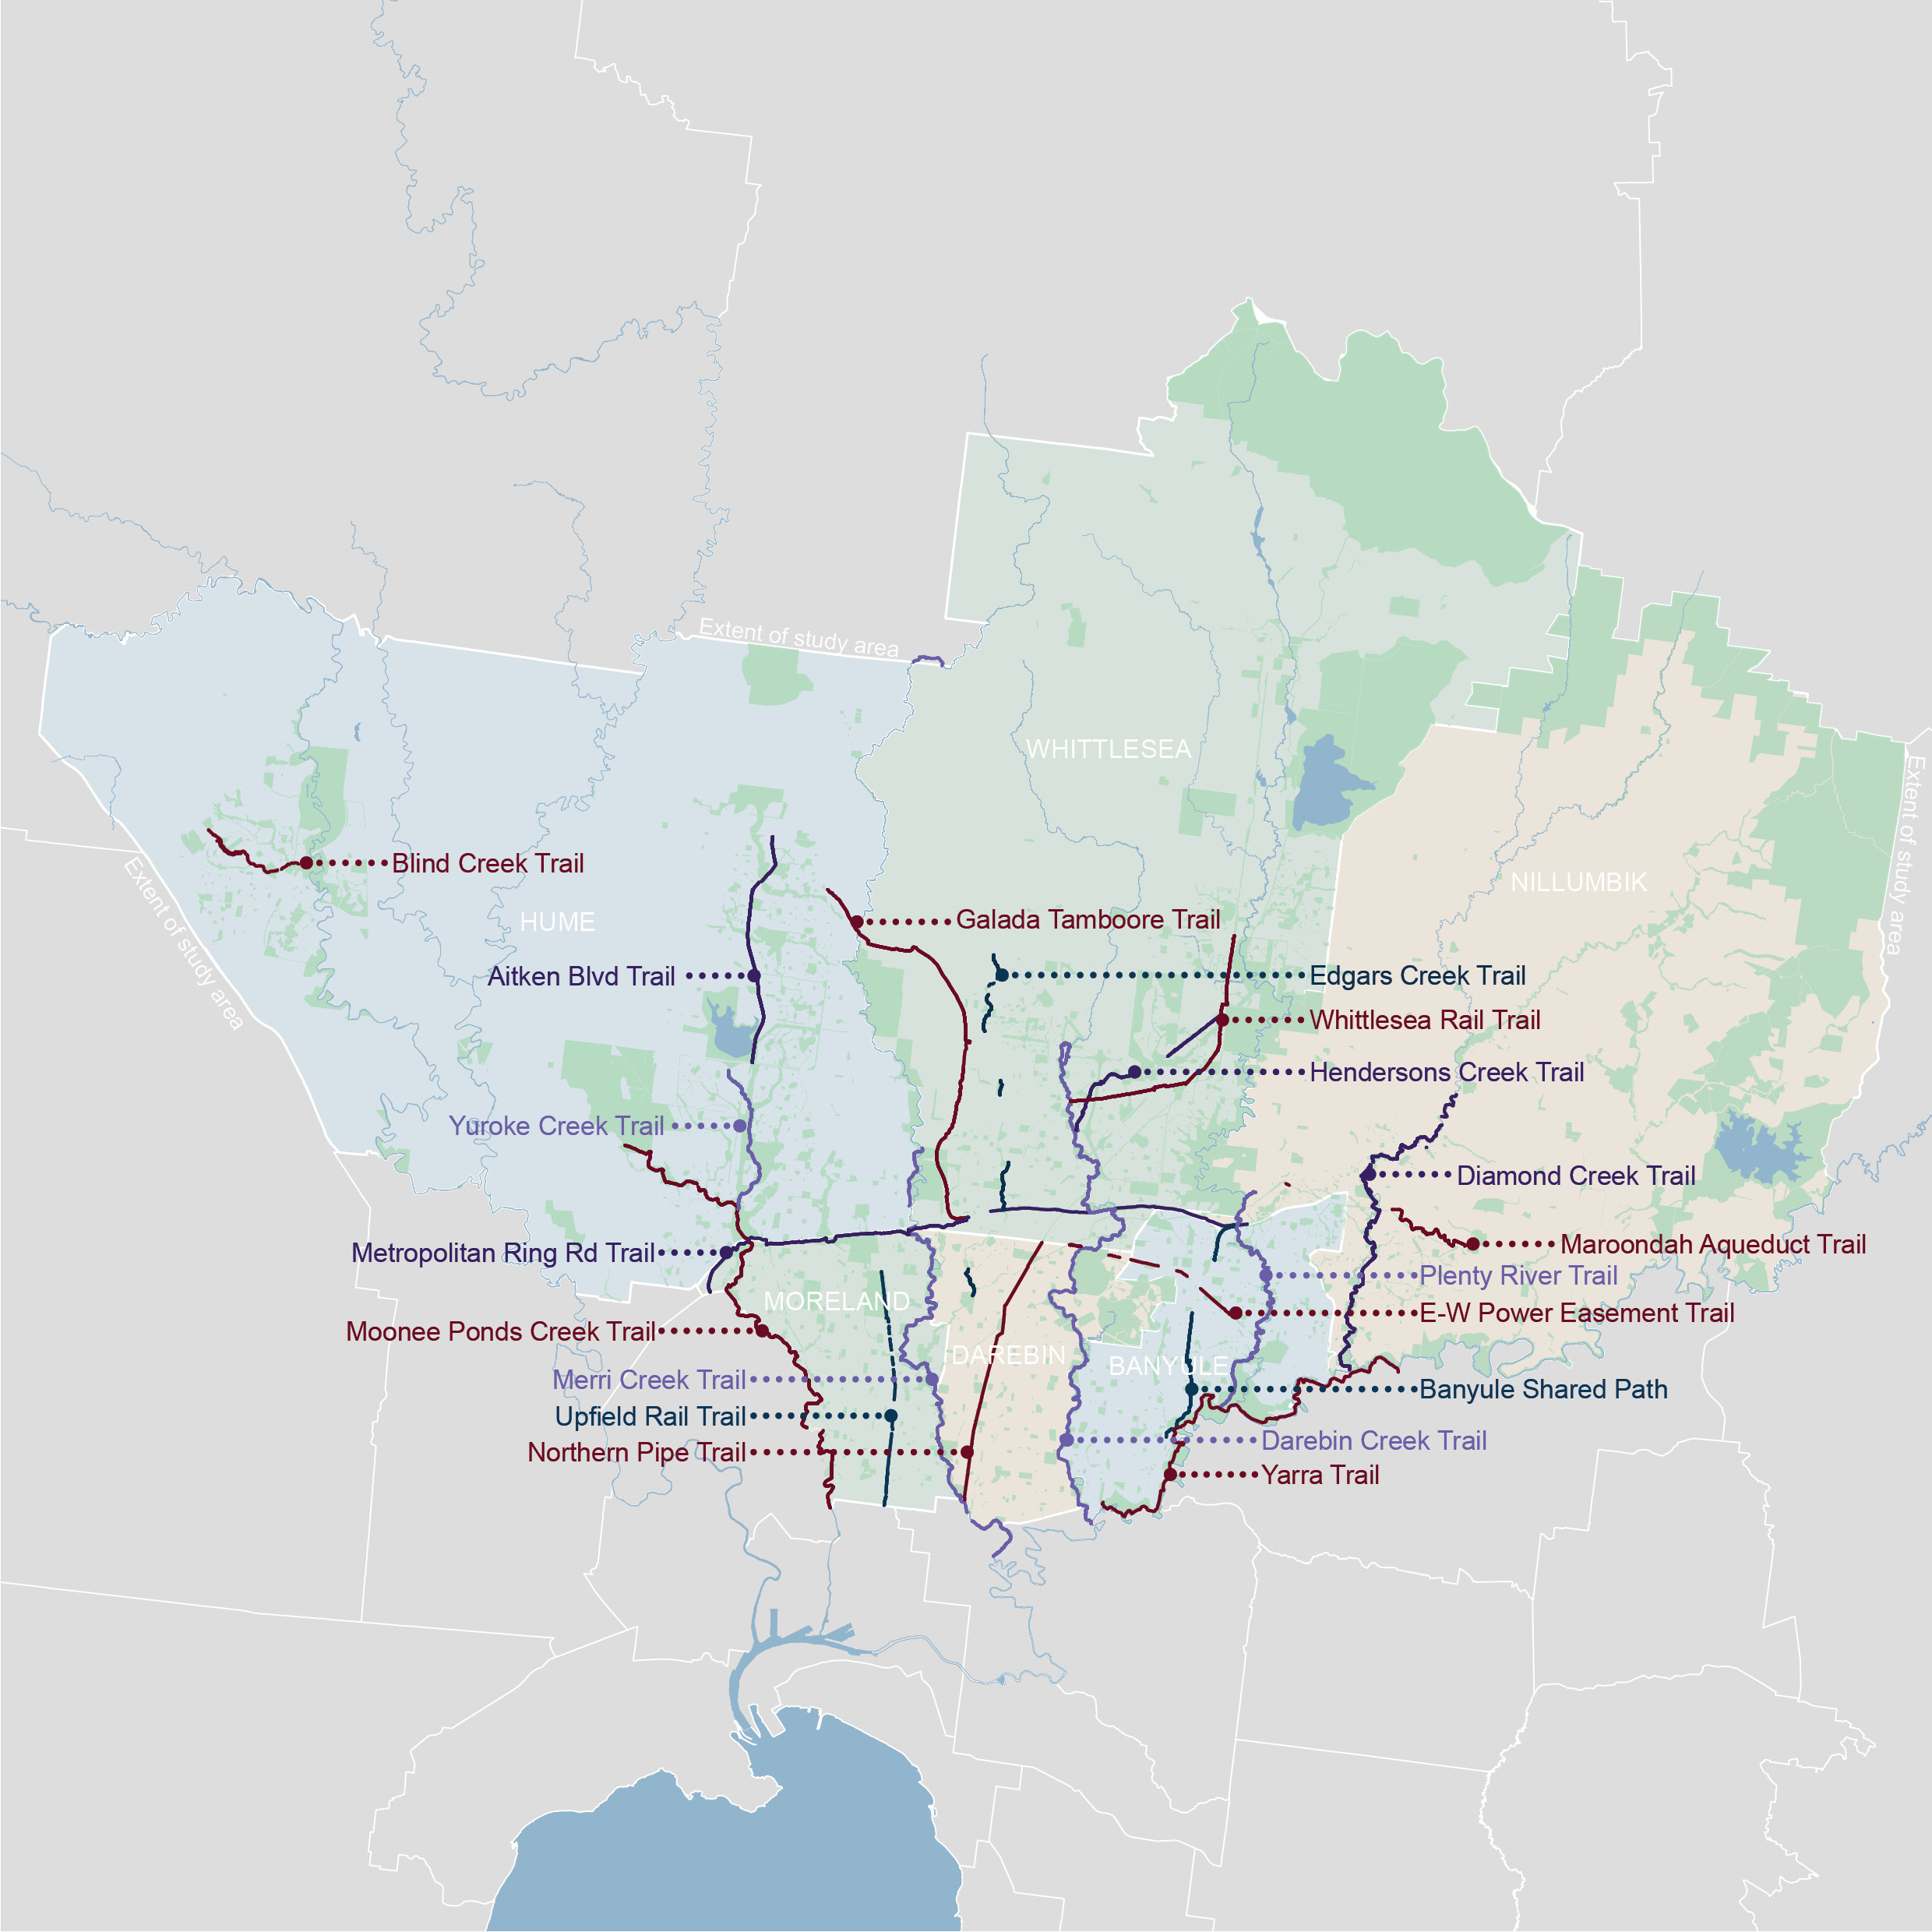 Map showing trails in the Northern region of Melbourne